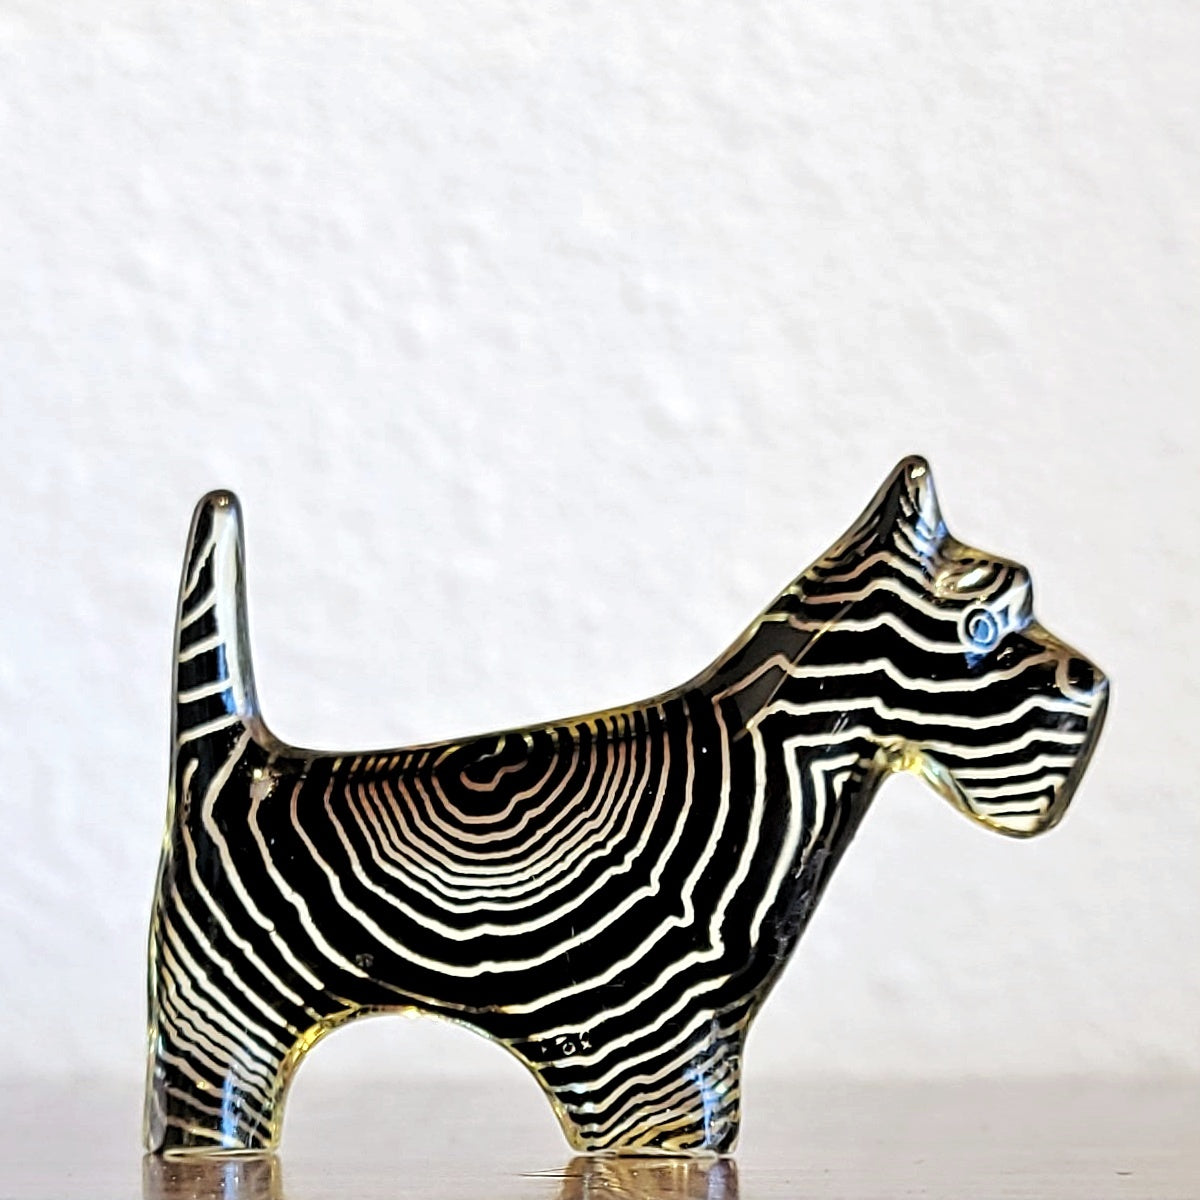 OP ART SCOTTISH TERRIER BY ABRAHAM PALATNIK FOR SILON (BRAZIL)